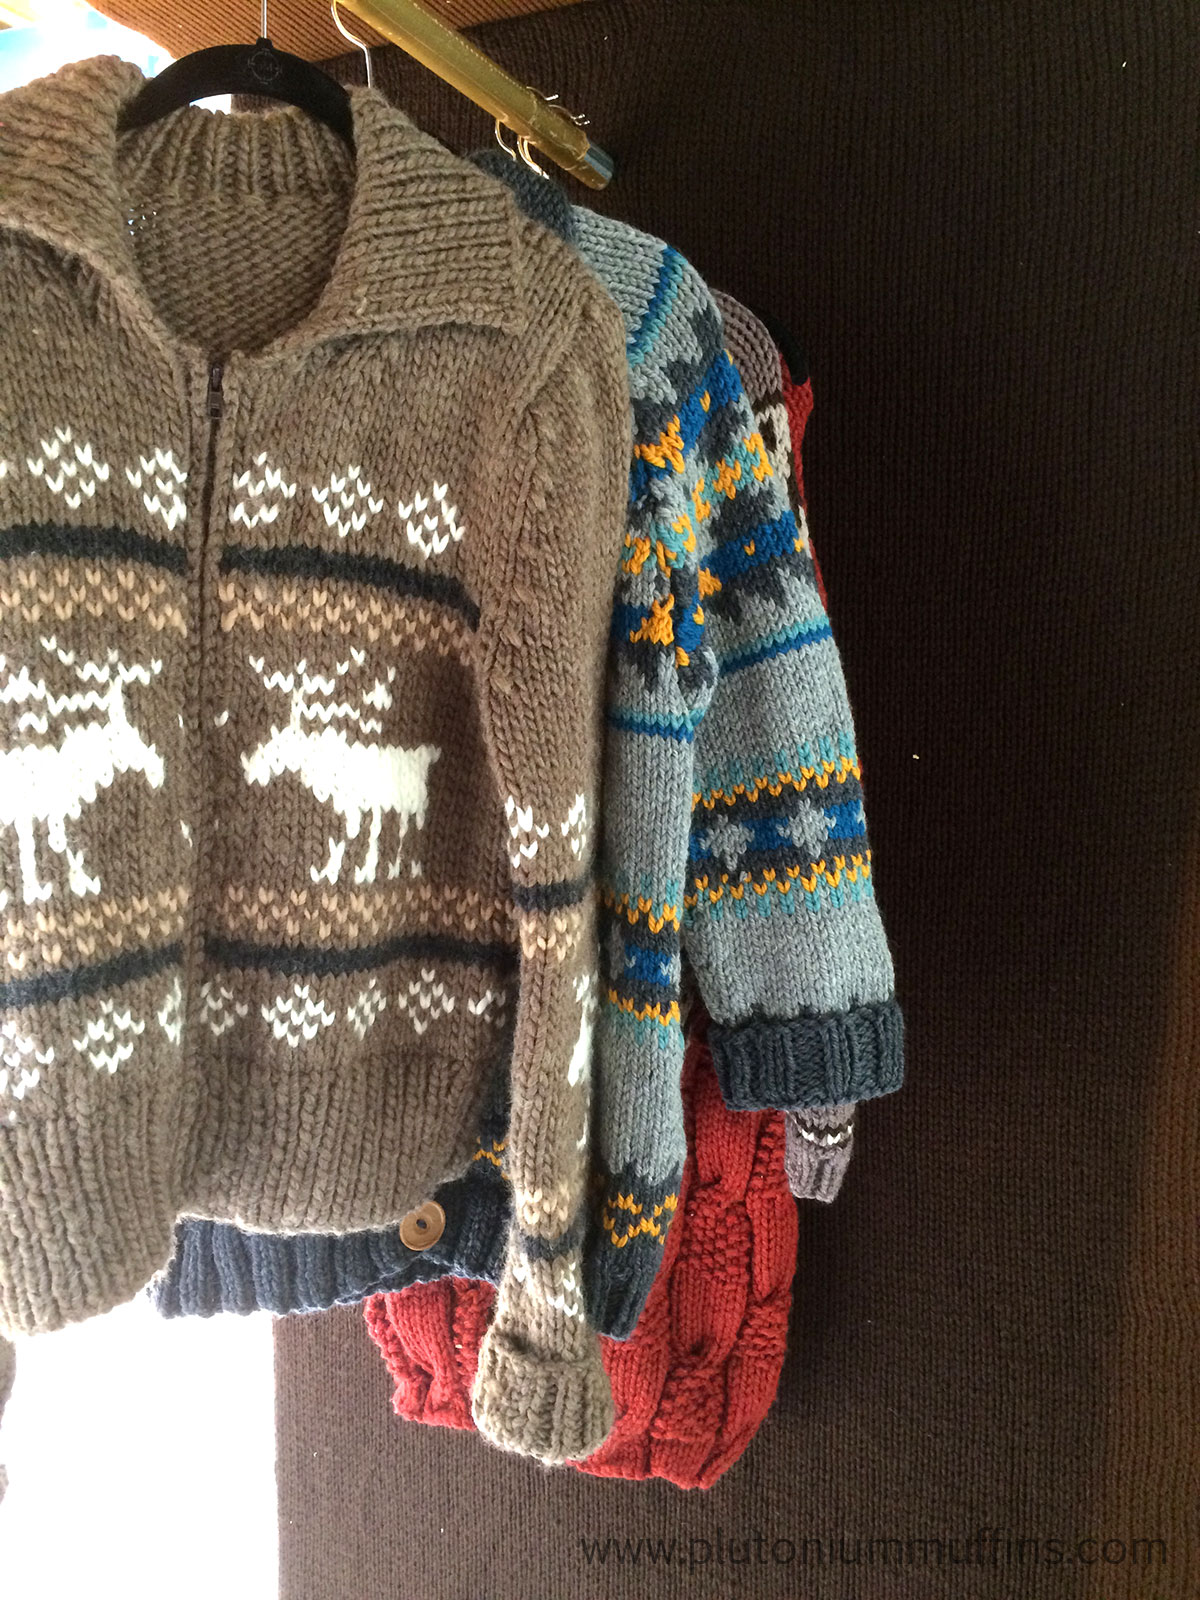 More beautiful jumpers - these ones in Fairisle, it was hard to get the colours right.